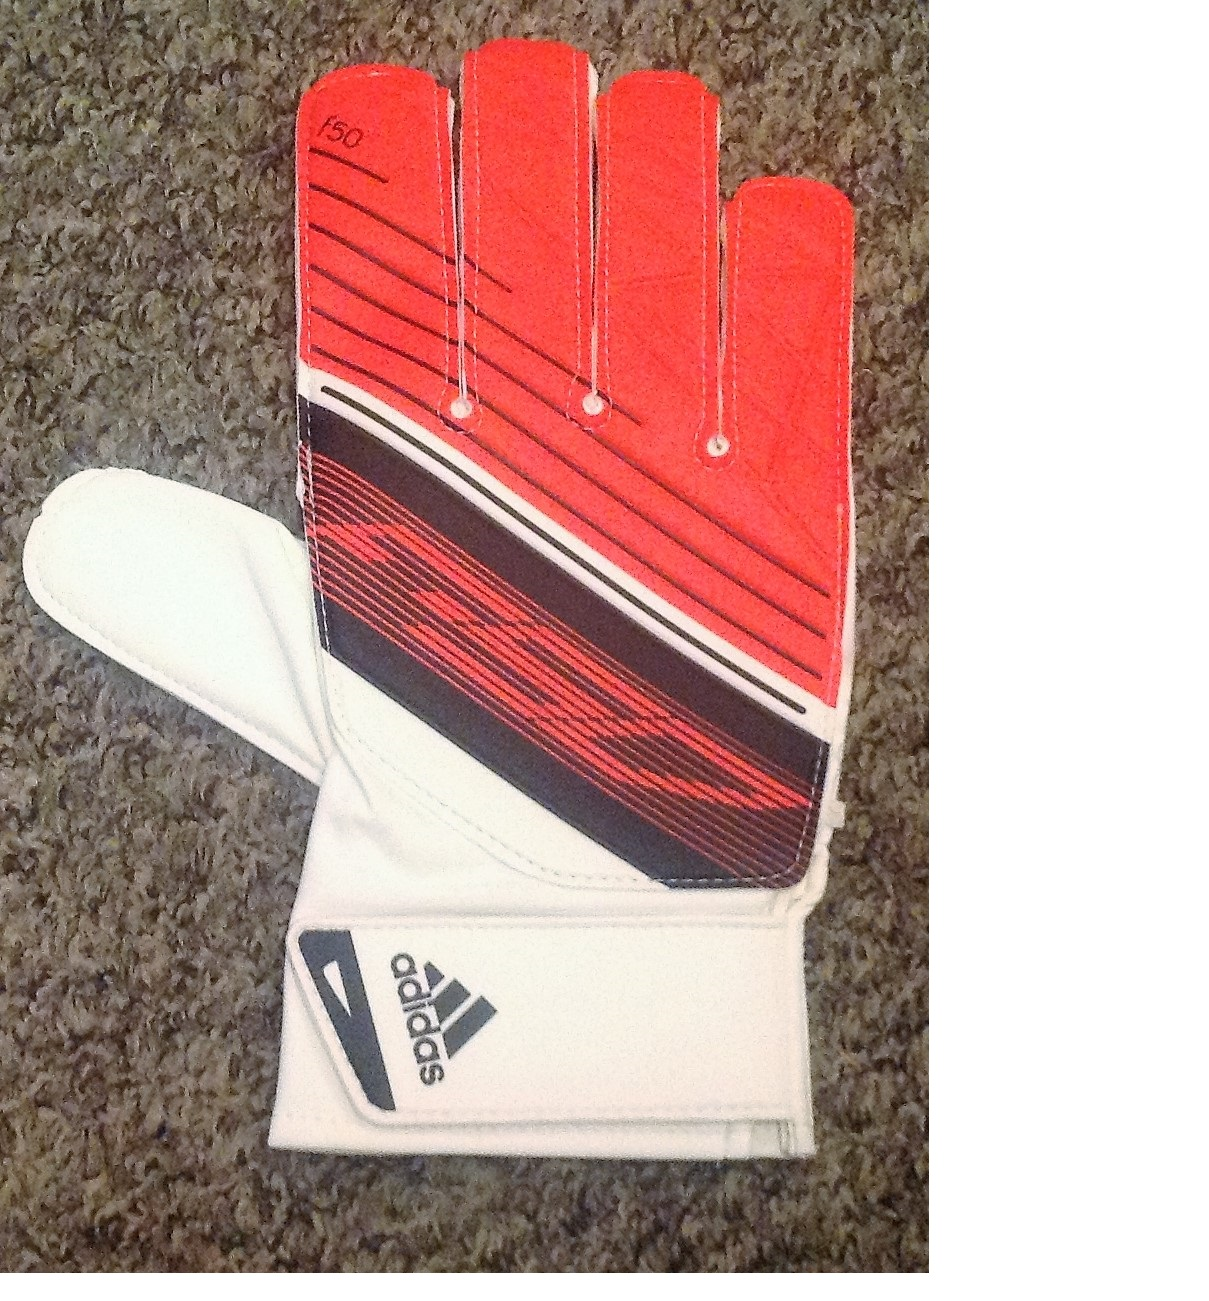 Lot 28 - Football Joe Hart signed Adidas goalkeeper glove. Charles Joseph John Hart, born 19 April 1987 is an